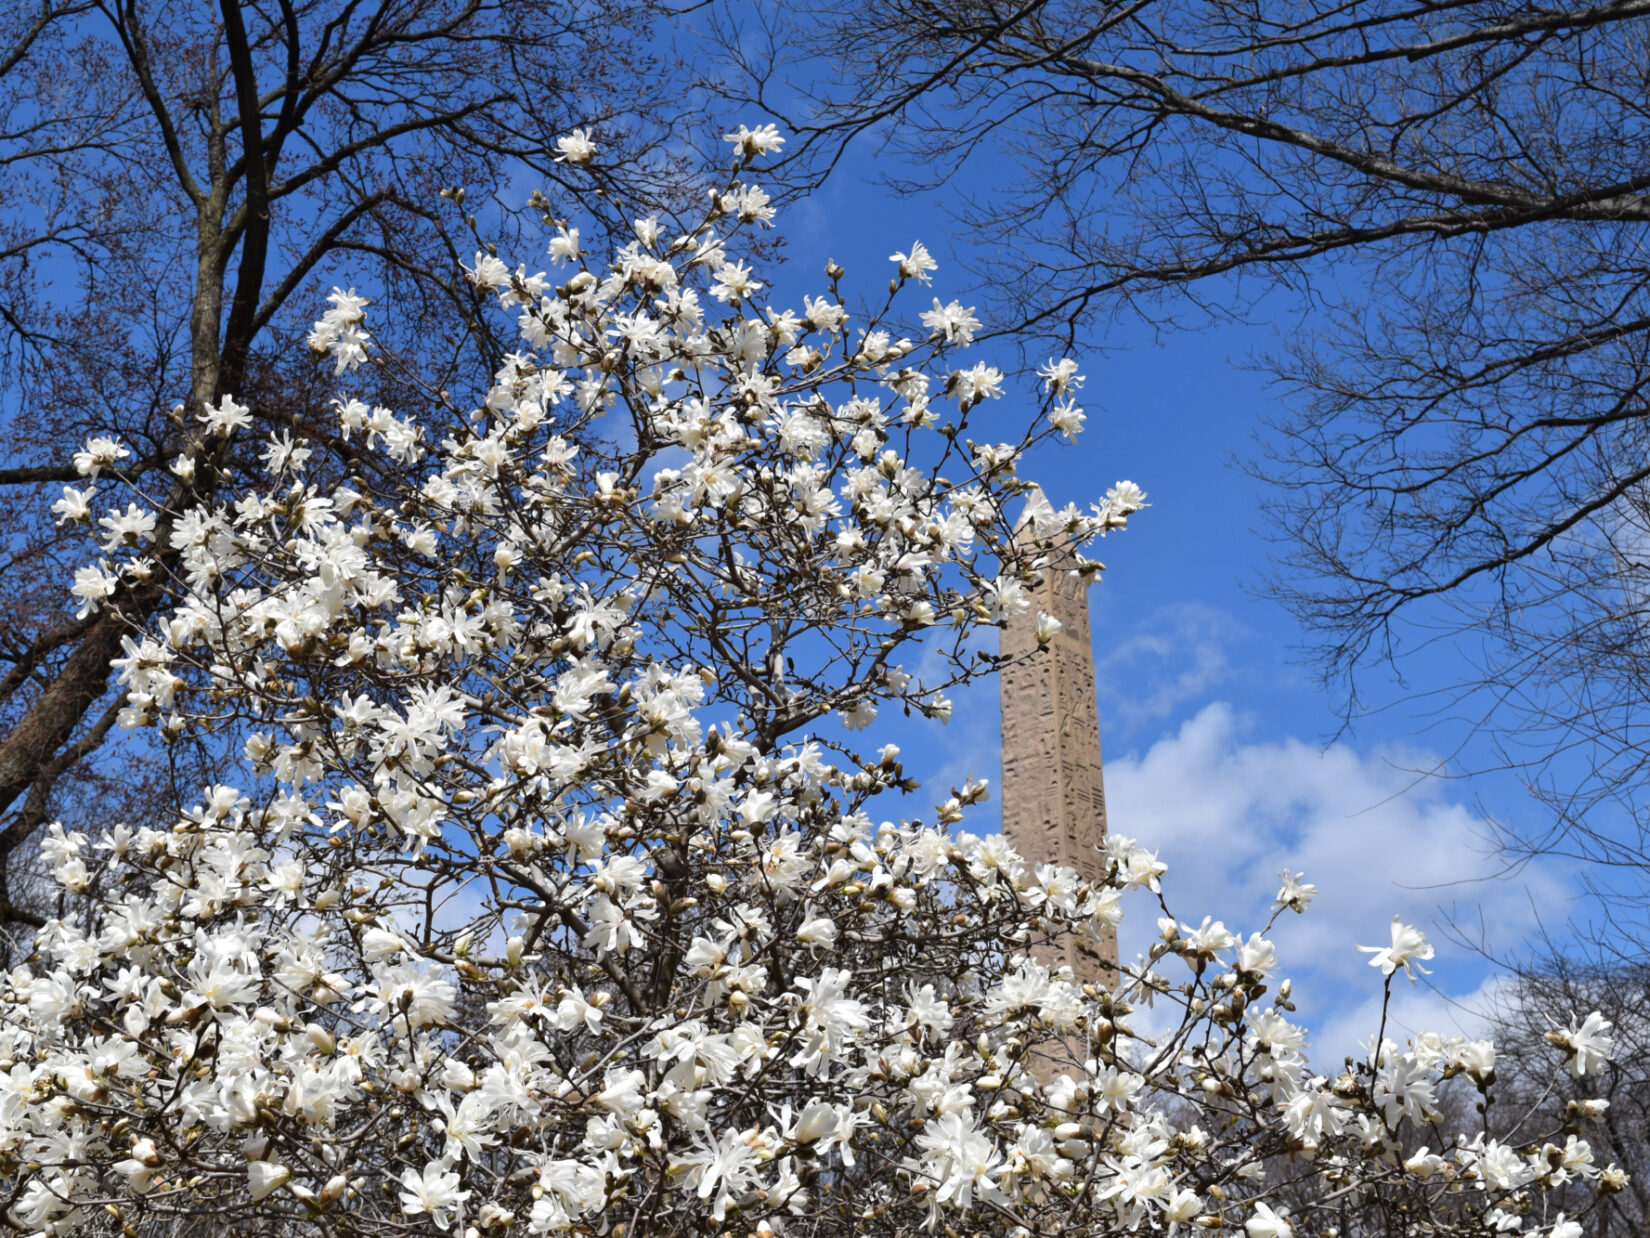 Cleopatra's Needle seen through the boughs of a magnolia tree